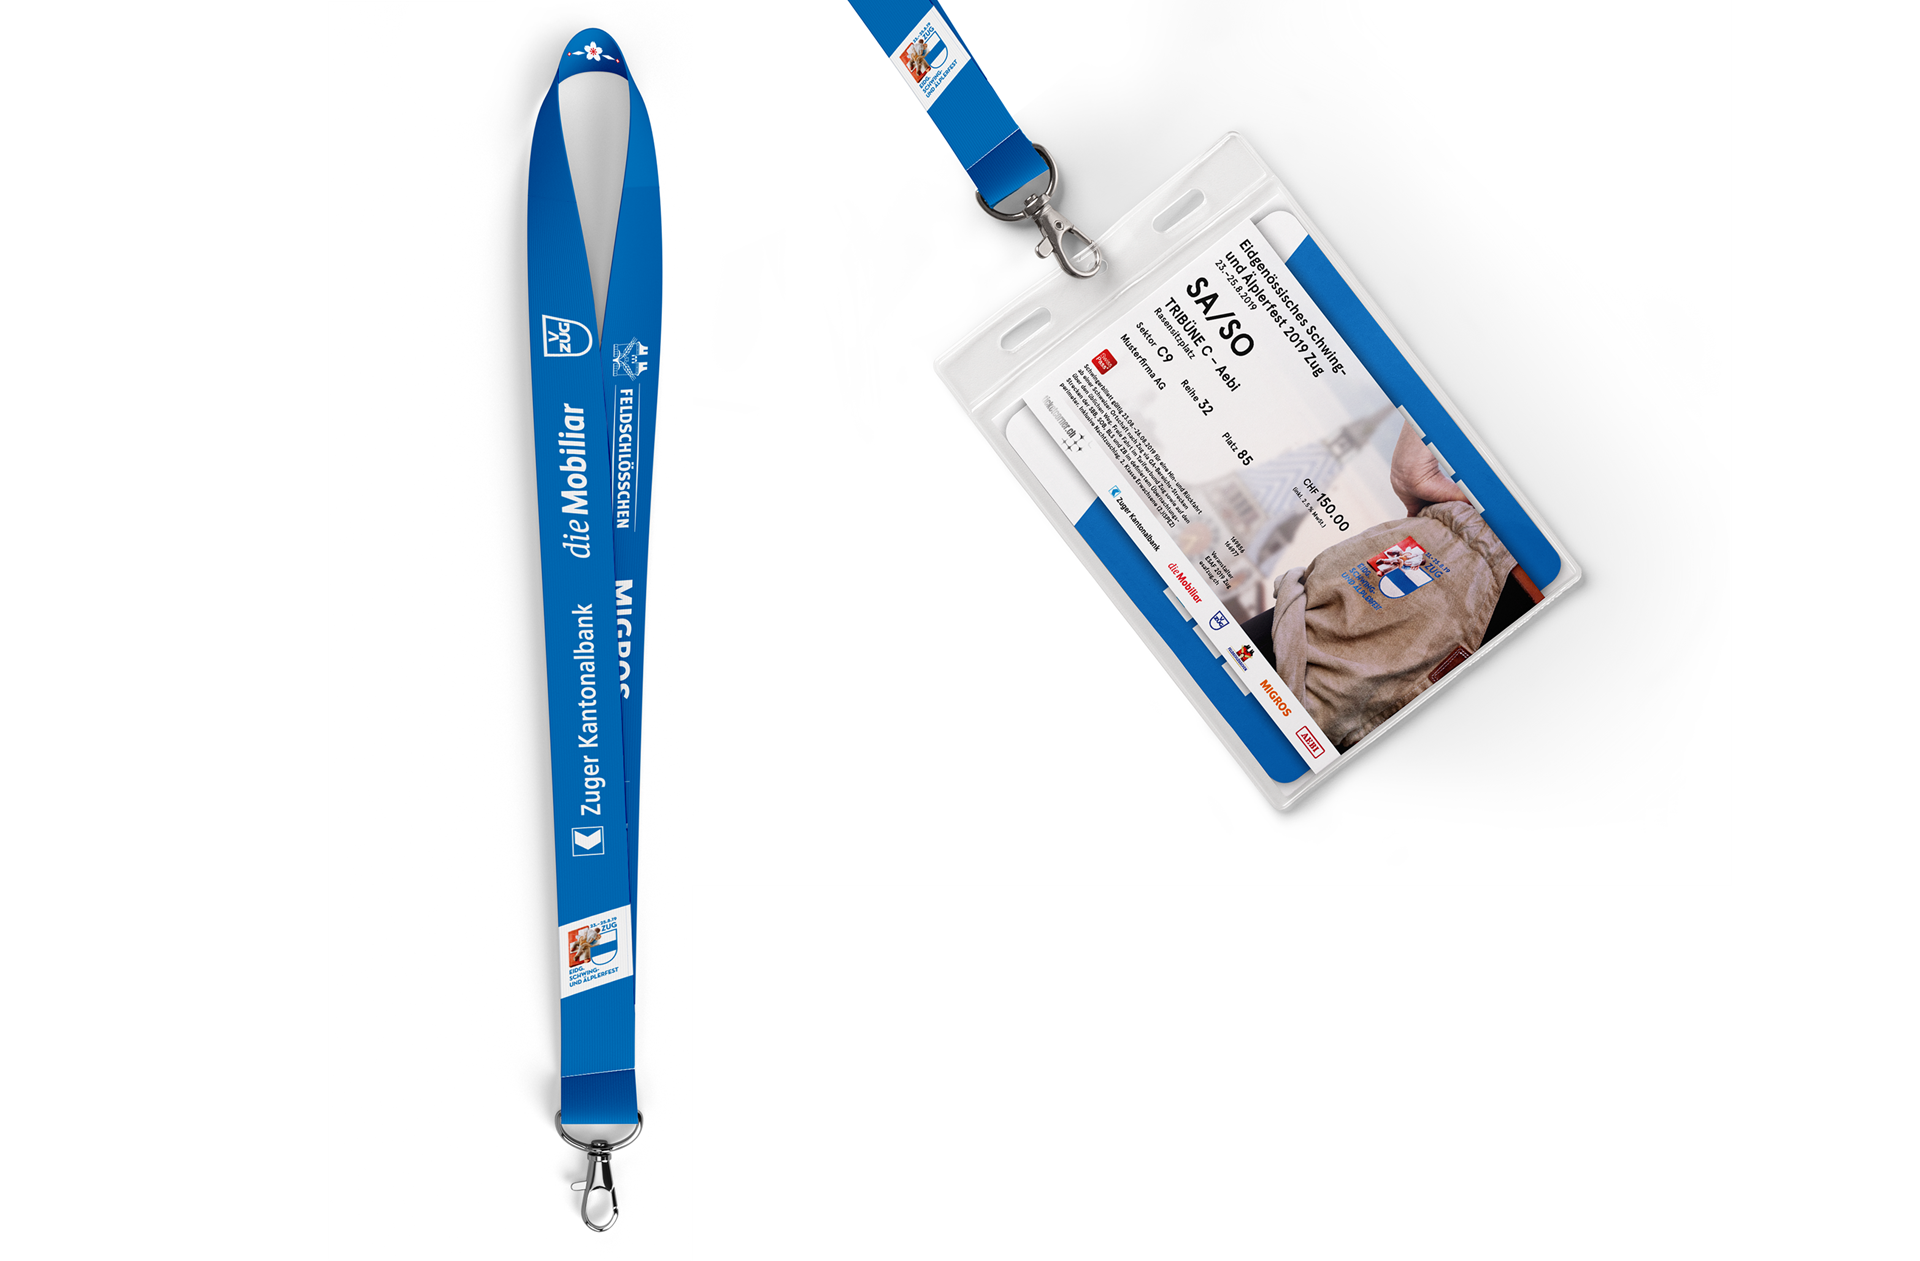 ESAF19_Lanyard_Ticket.png